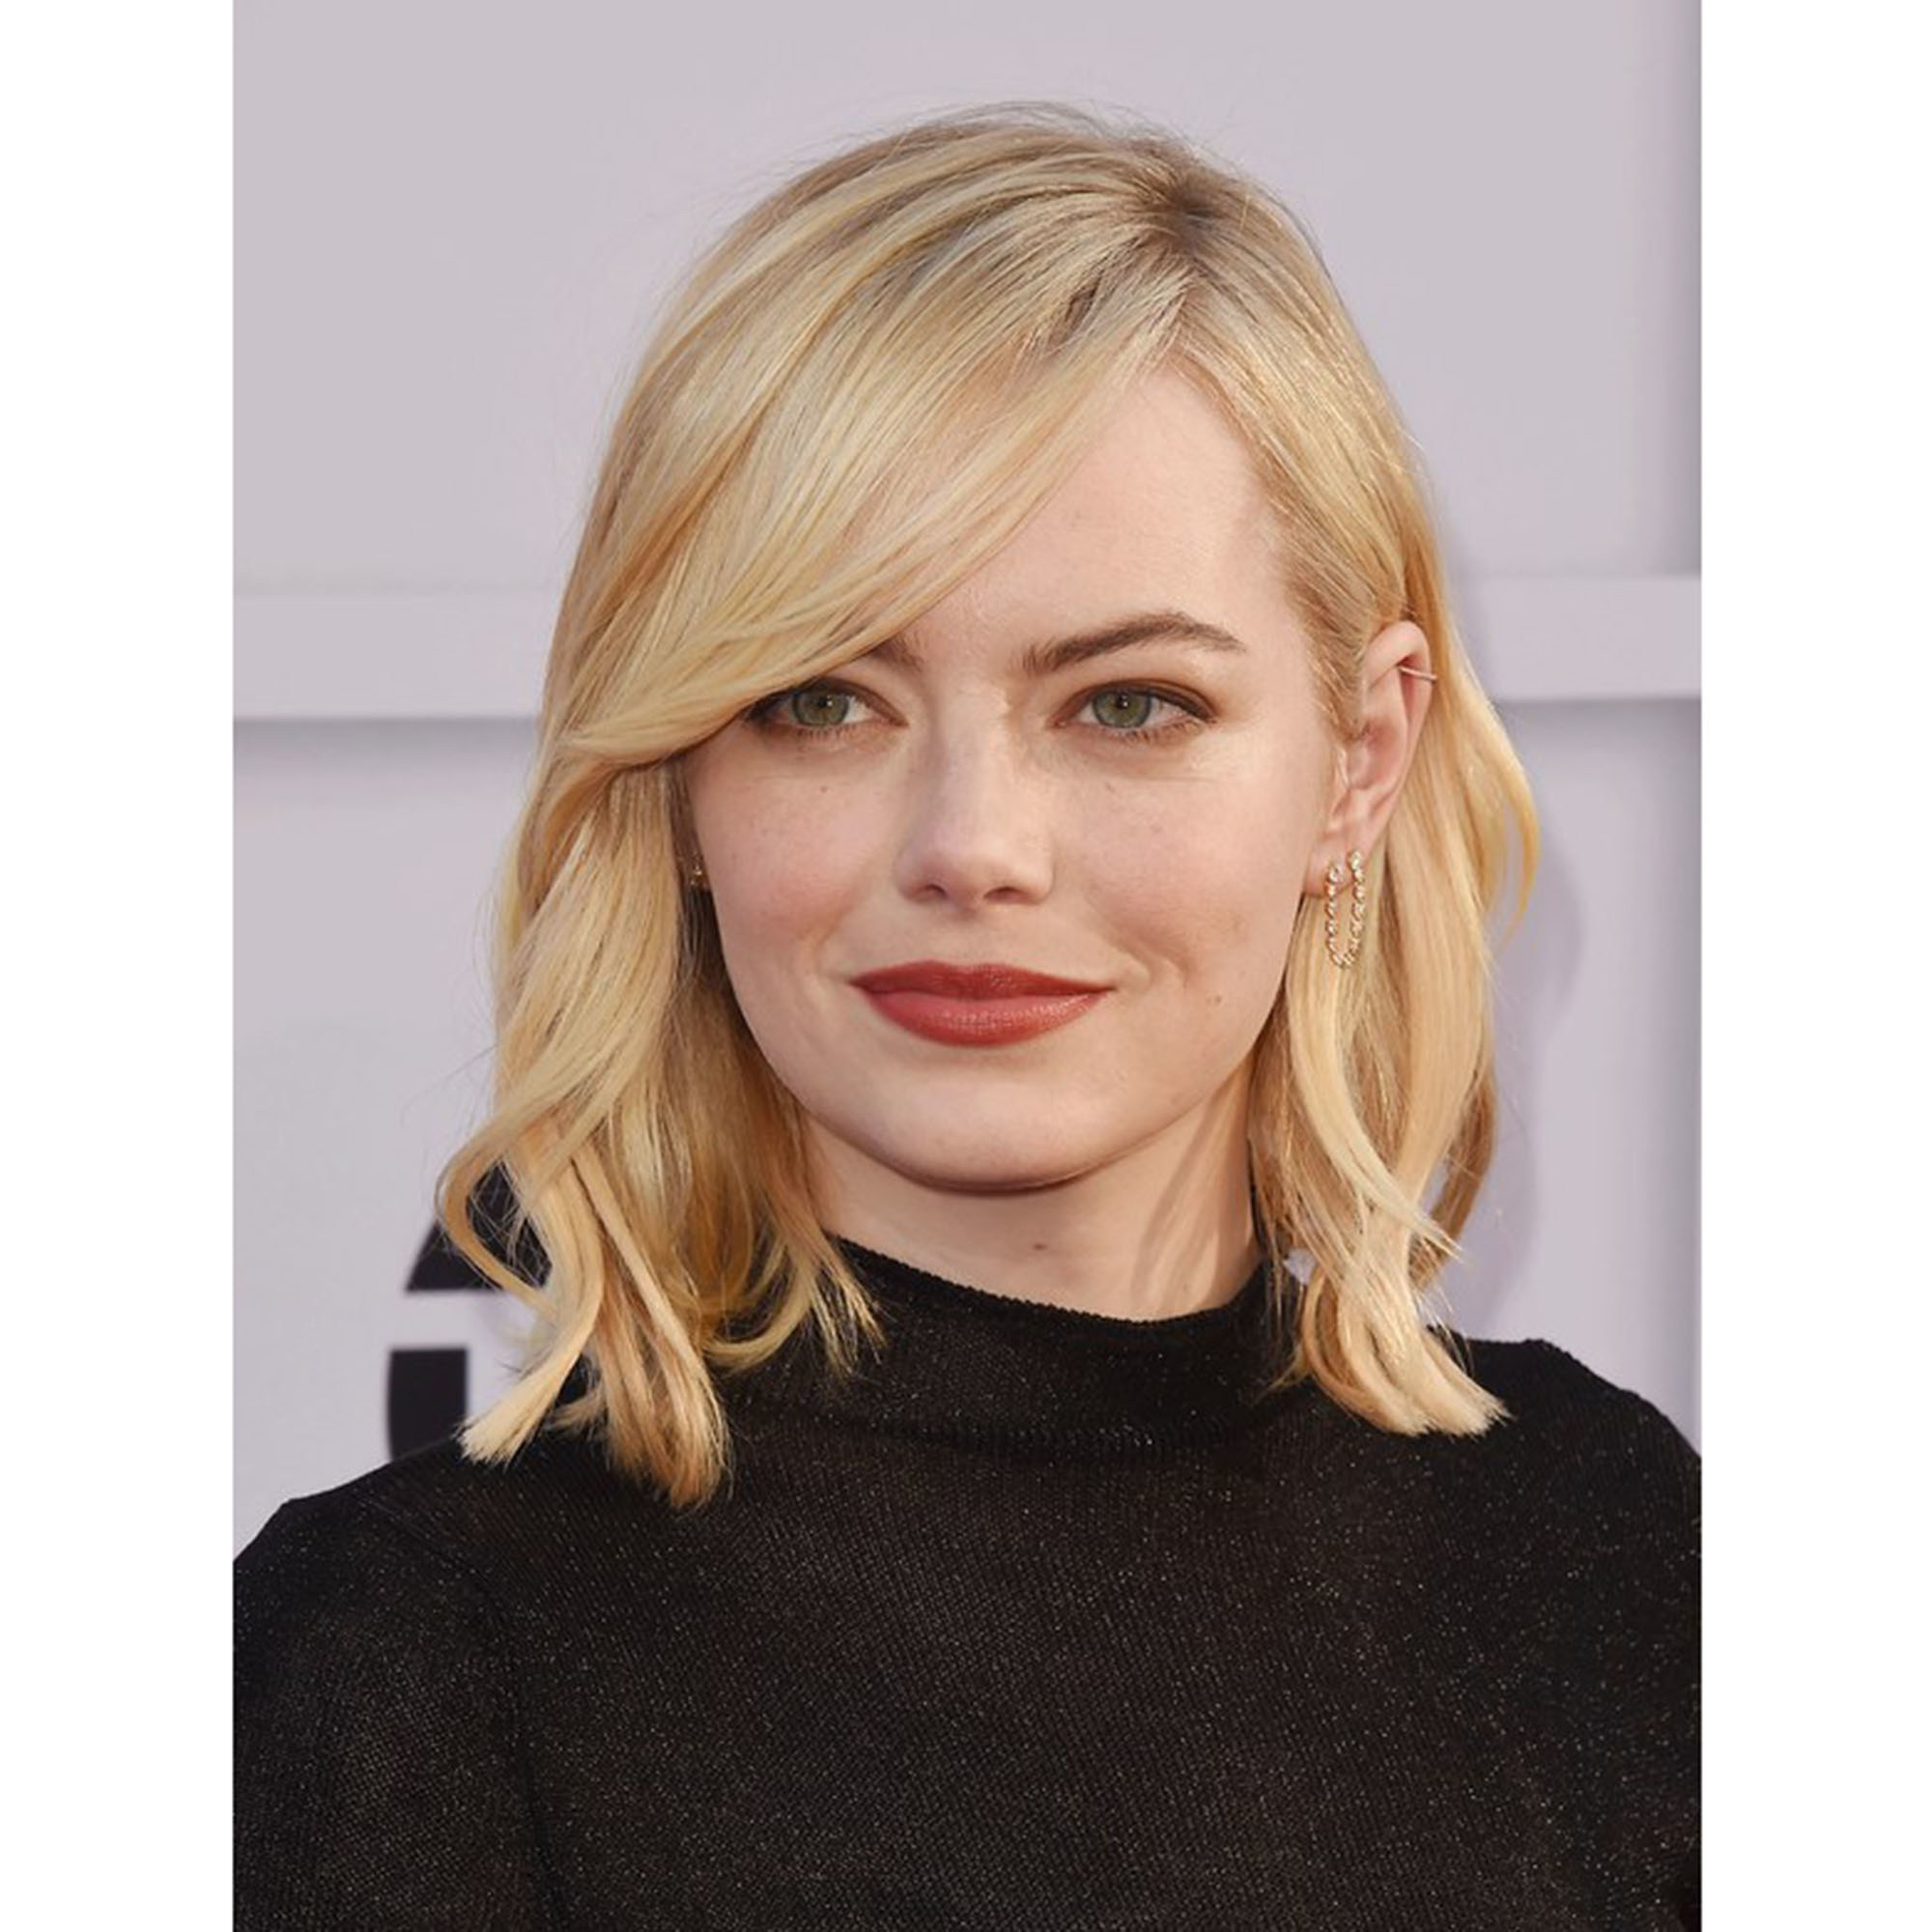 Most Popular Edgy Face Framing Bangs Hairstyles For The 9 Best Haircuts For Round Faces, According To Stylists (View 7 of 20)